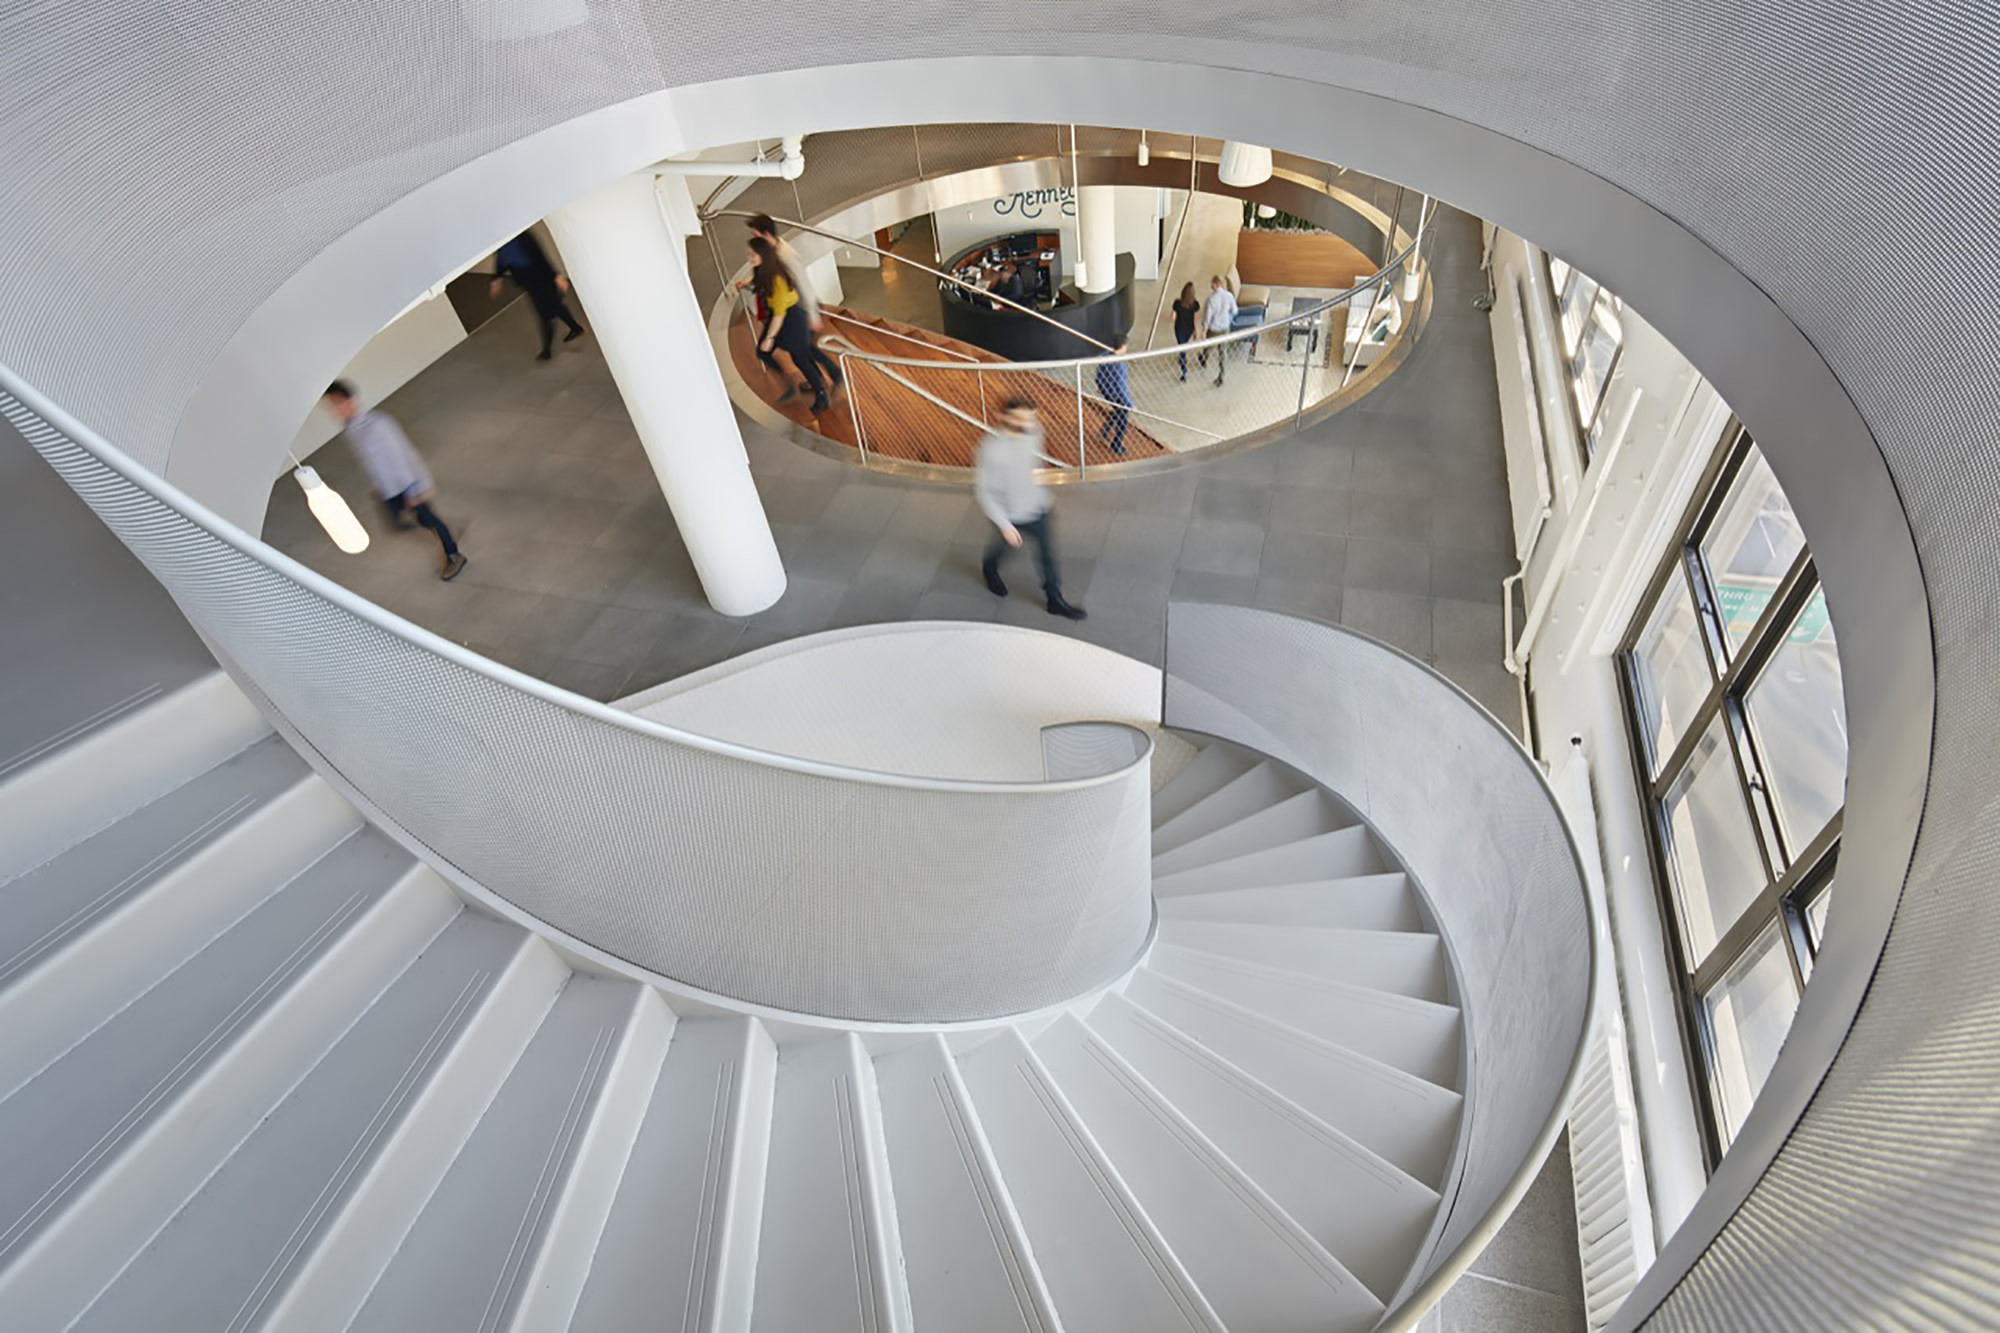 Can Buildings Make Us Healthier?, Staircases at Wieden+Kennedy NY by WORKac. Image © Bruce Damonte